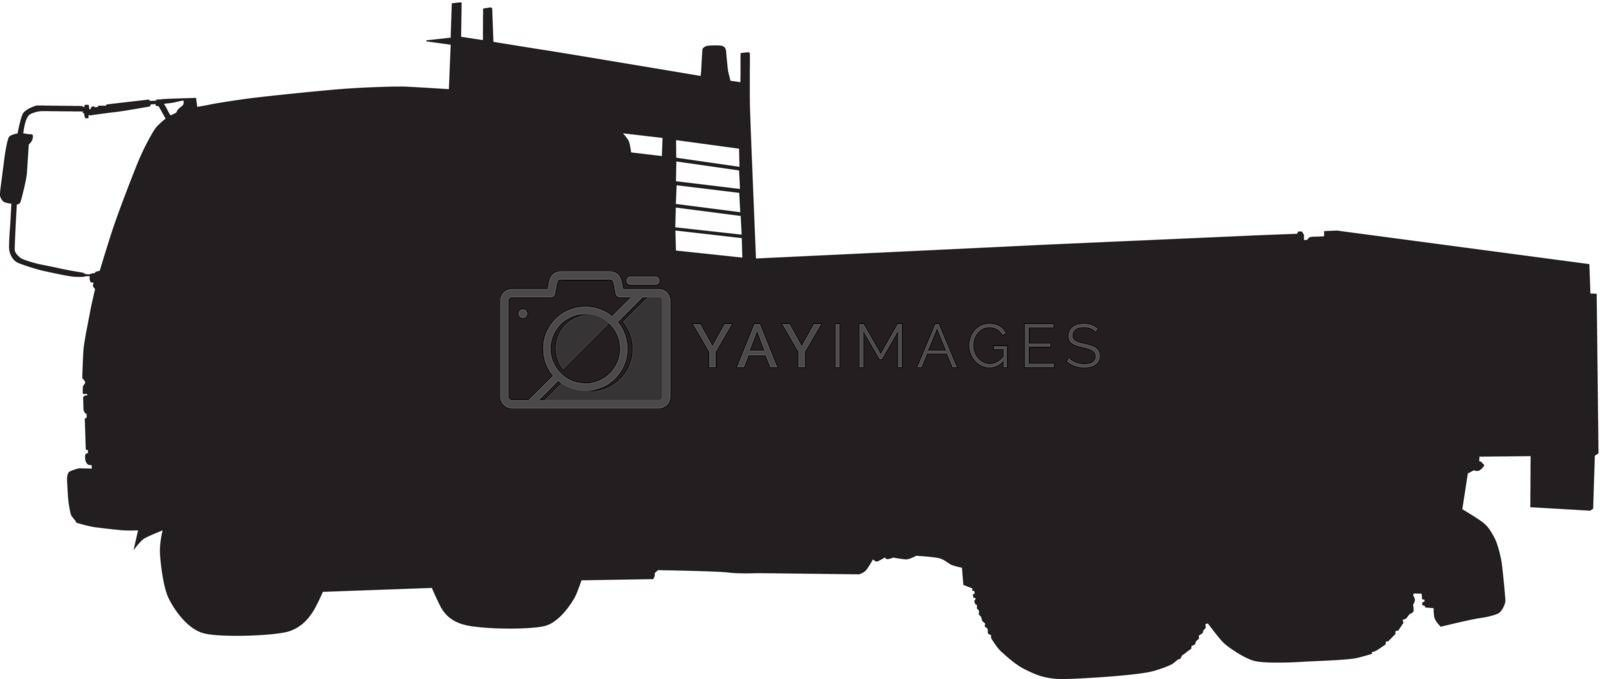 silhouette of a tipper or dump truck lorry done in retro style on isolated background